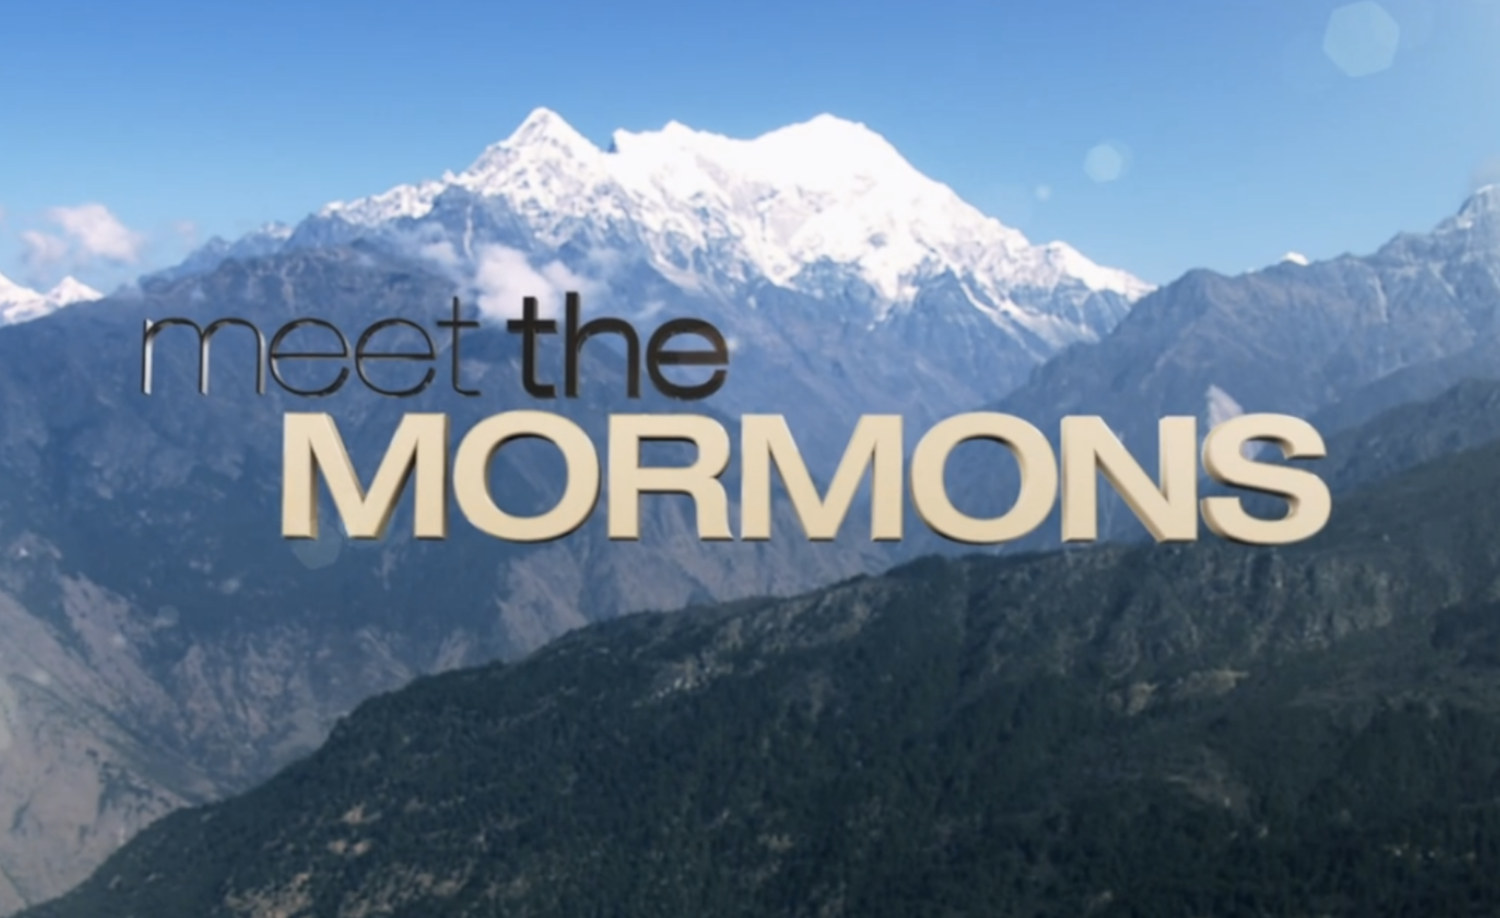 Editors Try To Imagine Using Church Of Jesus Christ Of Latter Day